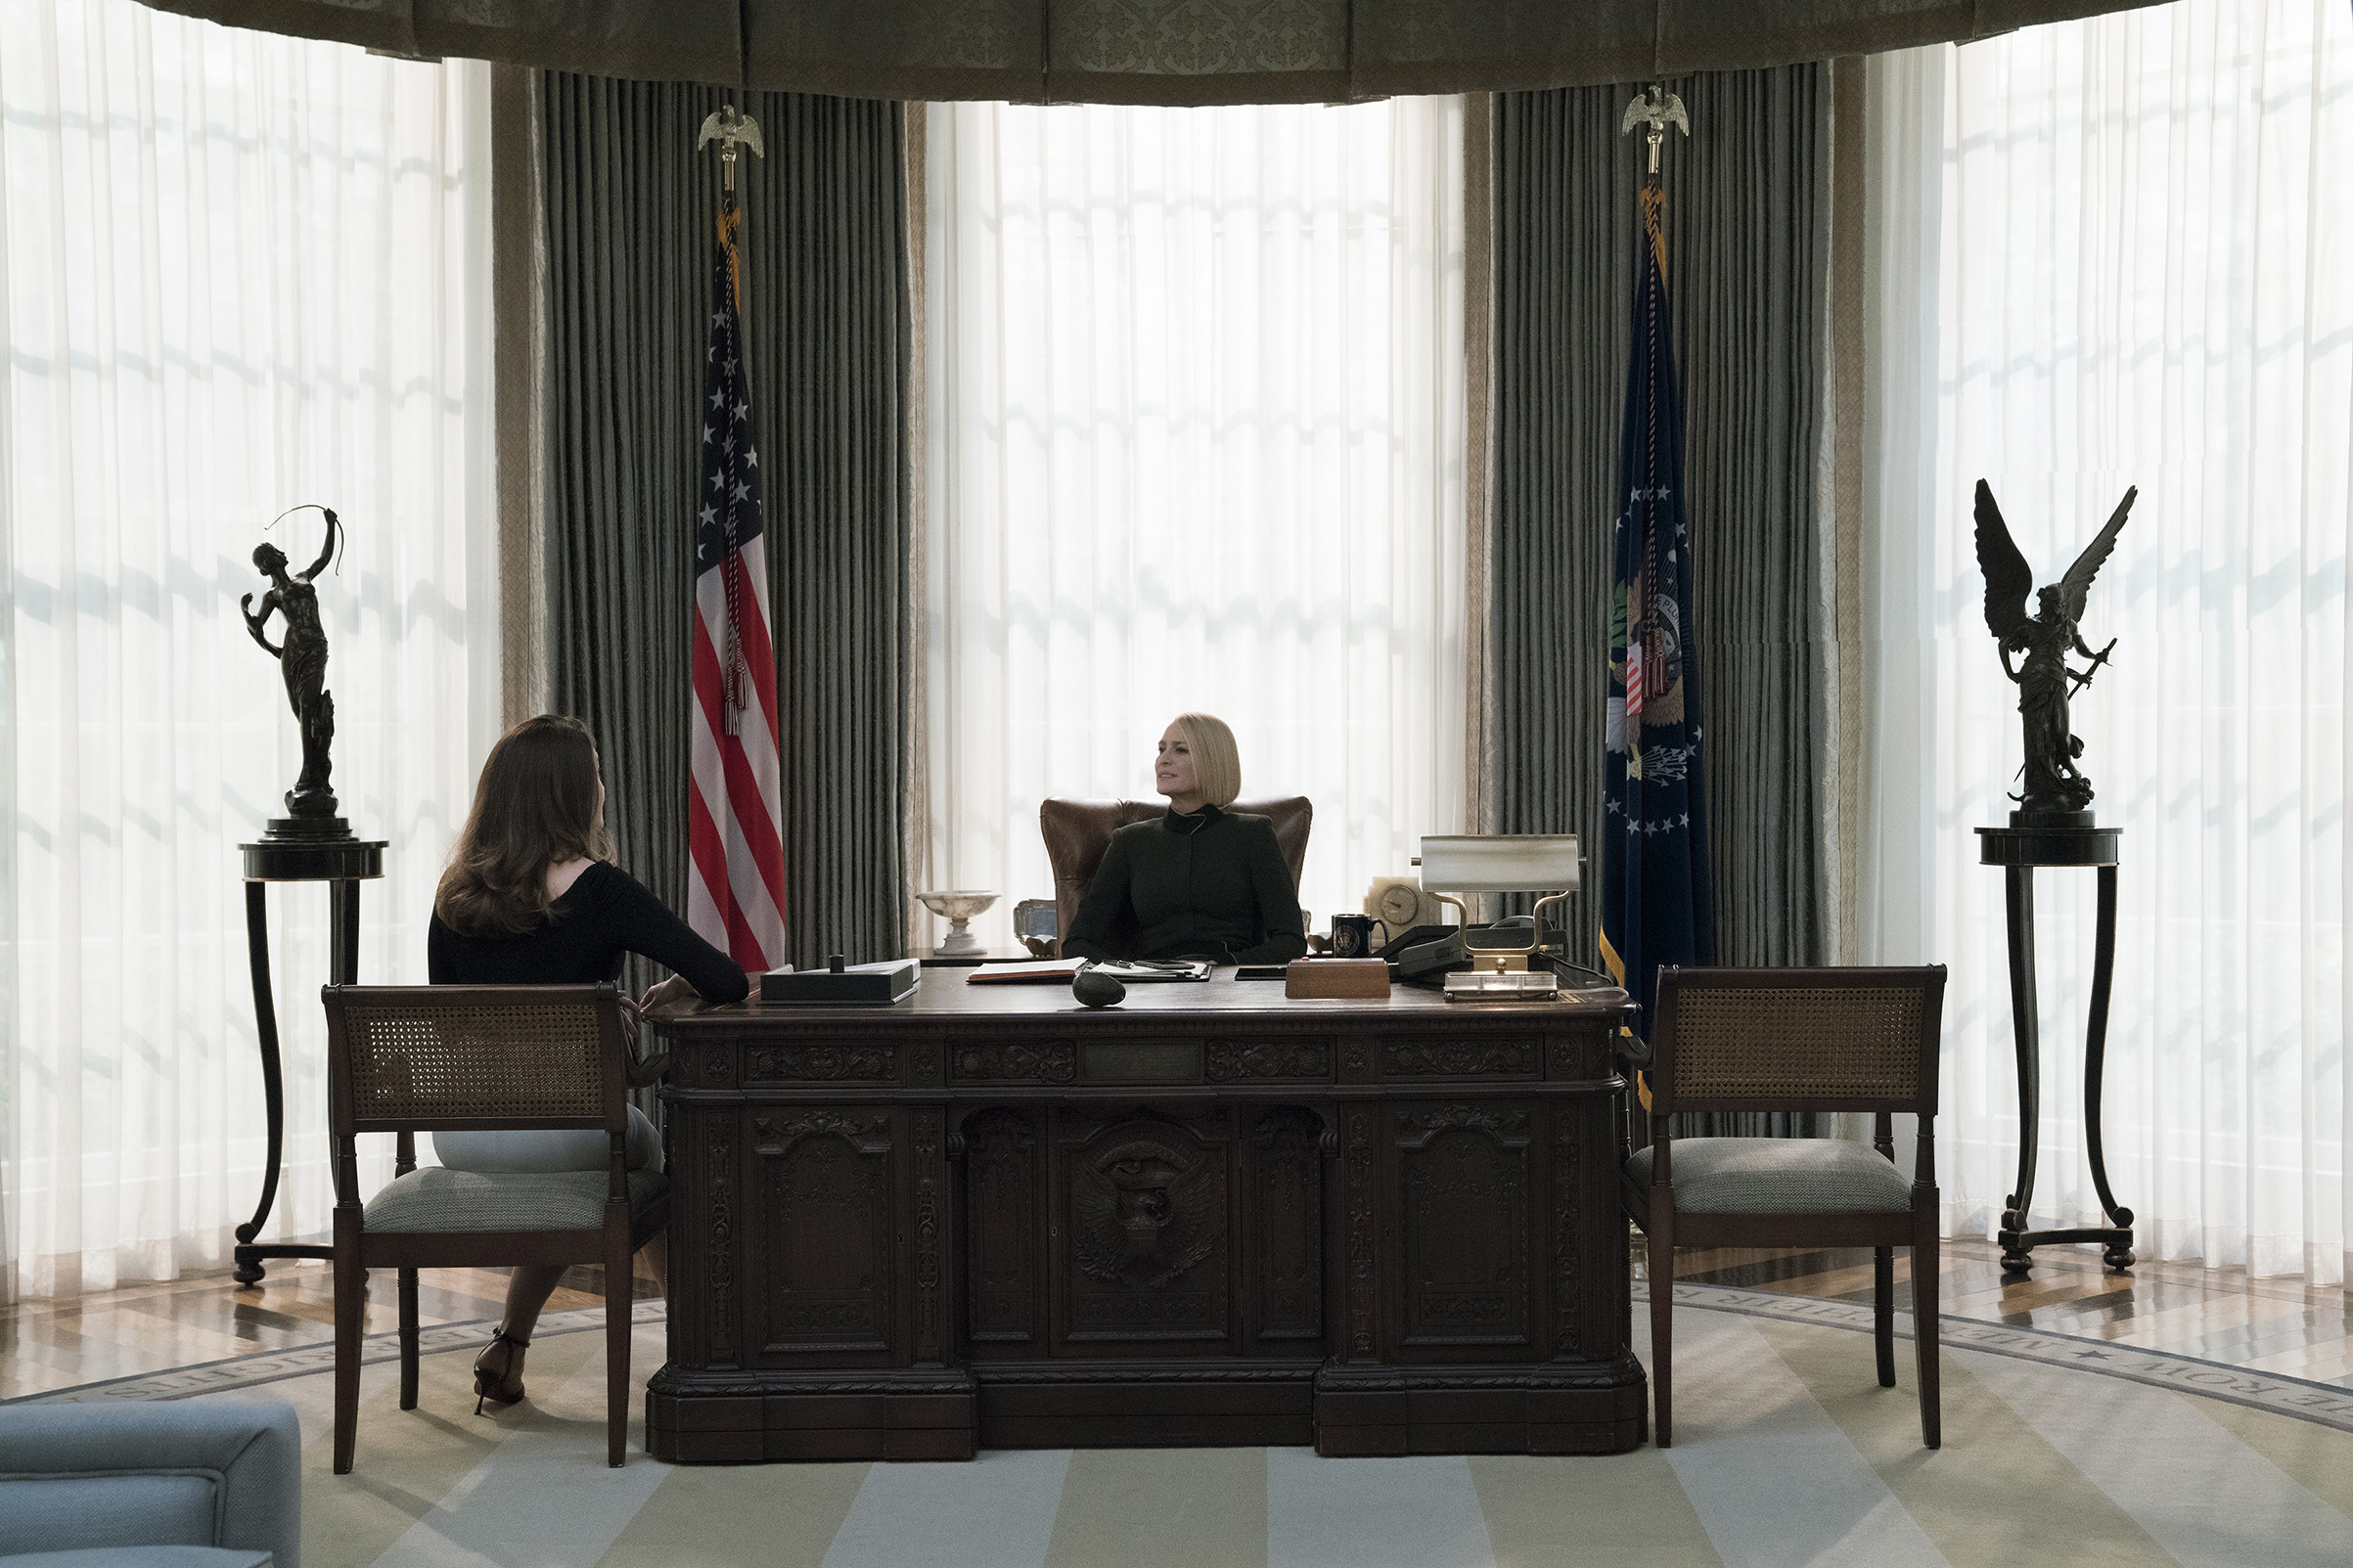 Robin Wright's Claire Underwood assumes the presidency on House of Cards but still has to live in her husband's shadow